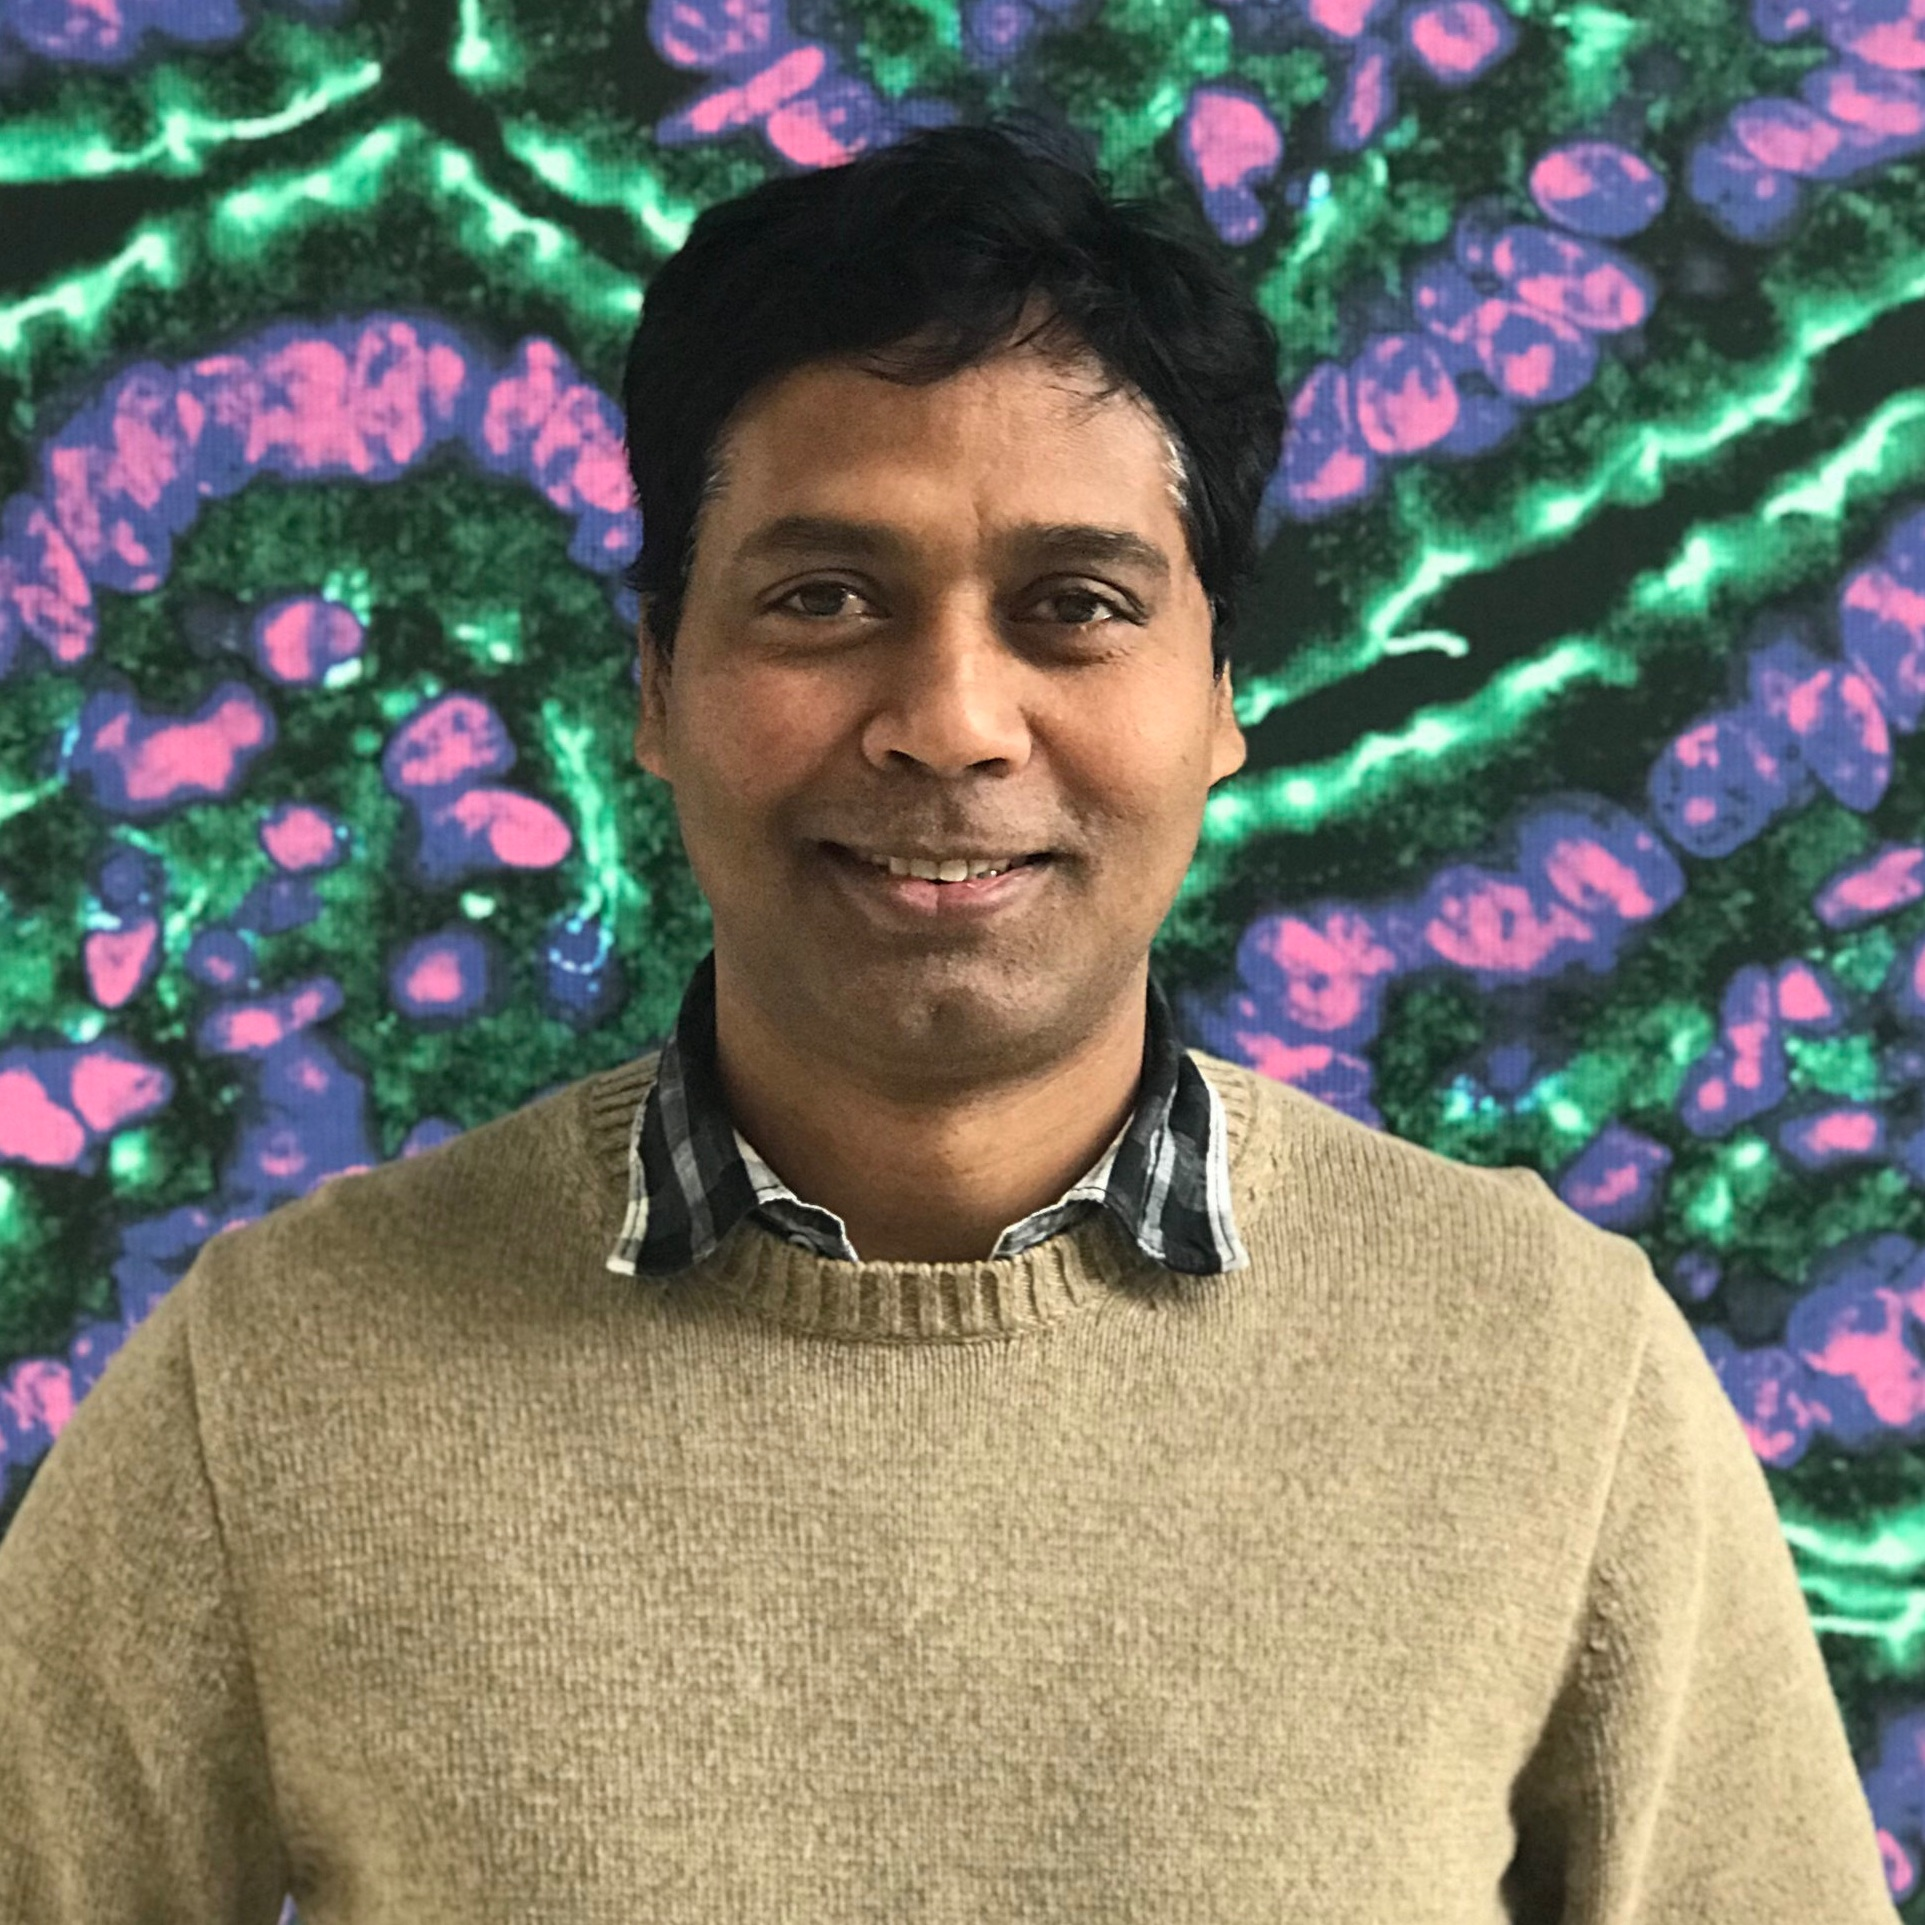 Vivek Yadav, Ph.D. - Research Investigator